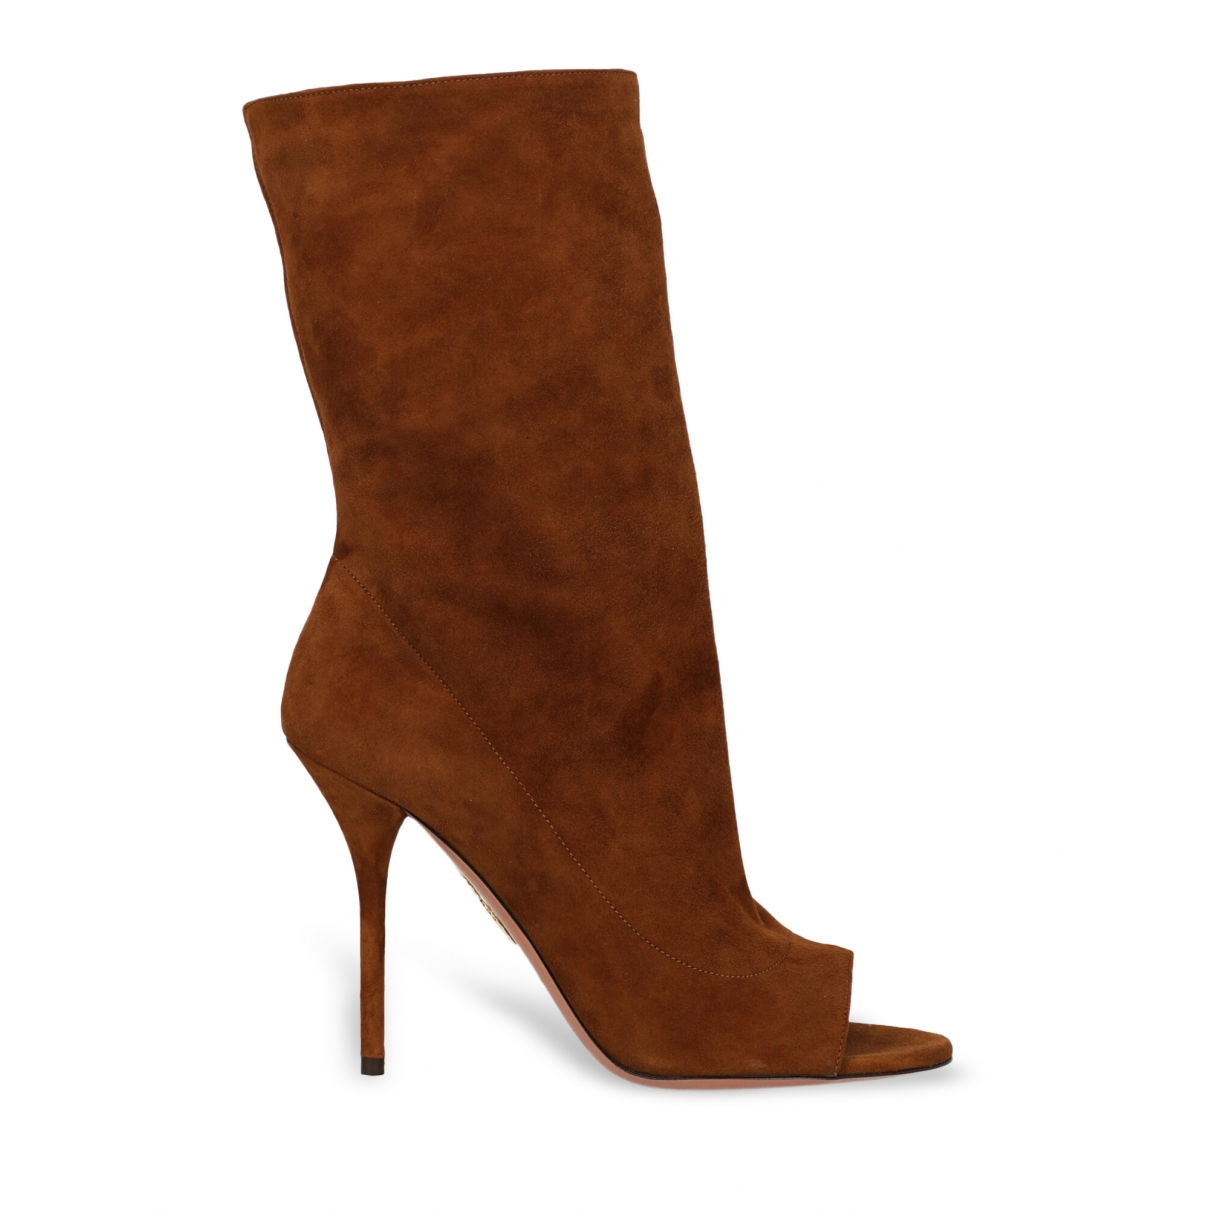 Aquazzura \N Camel Leather Ankle boots for Women 37 IT